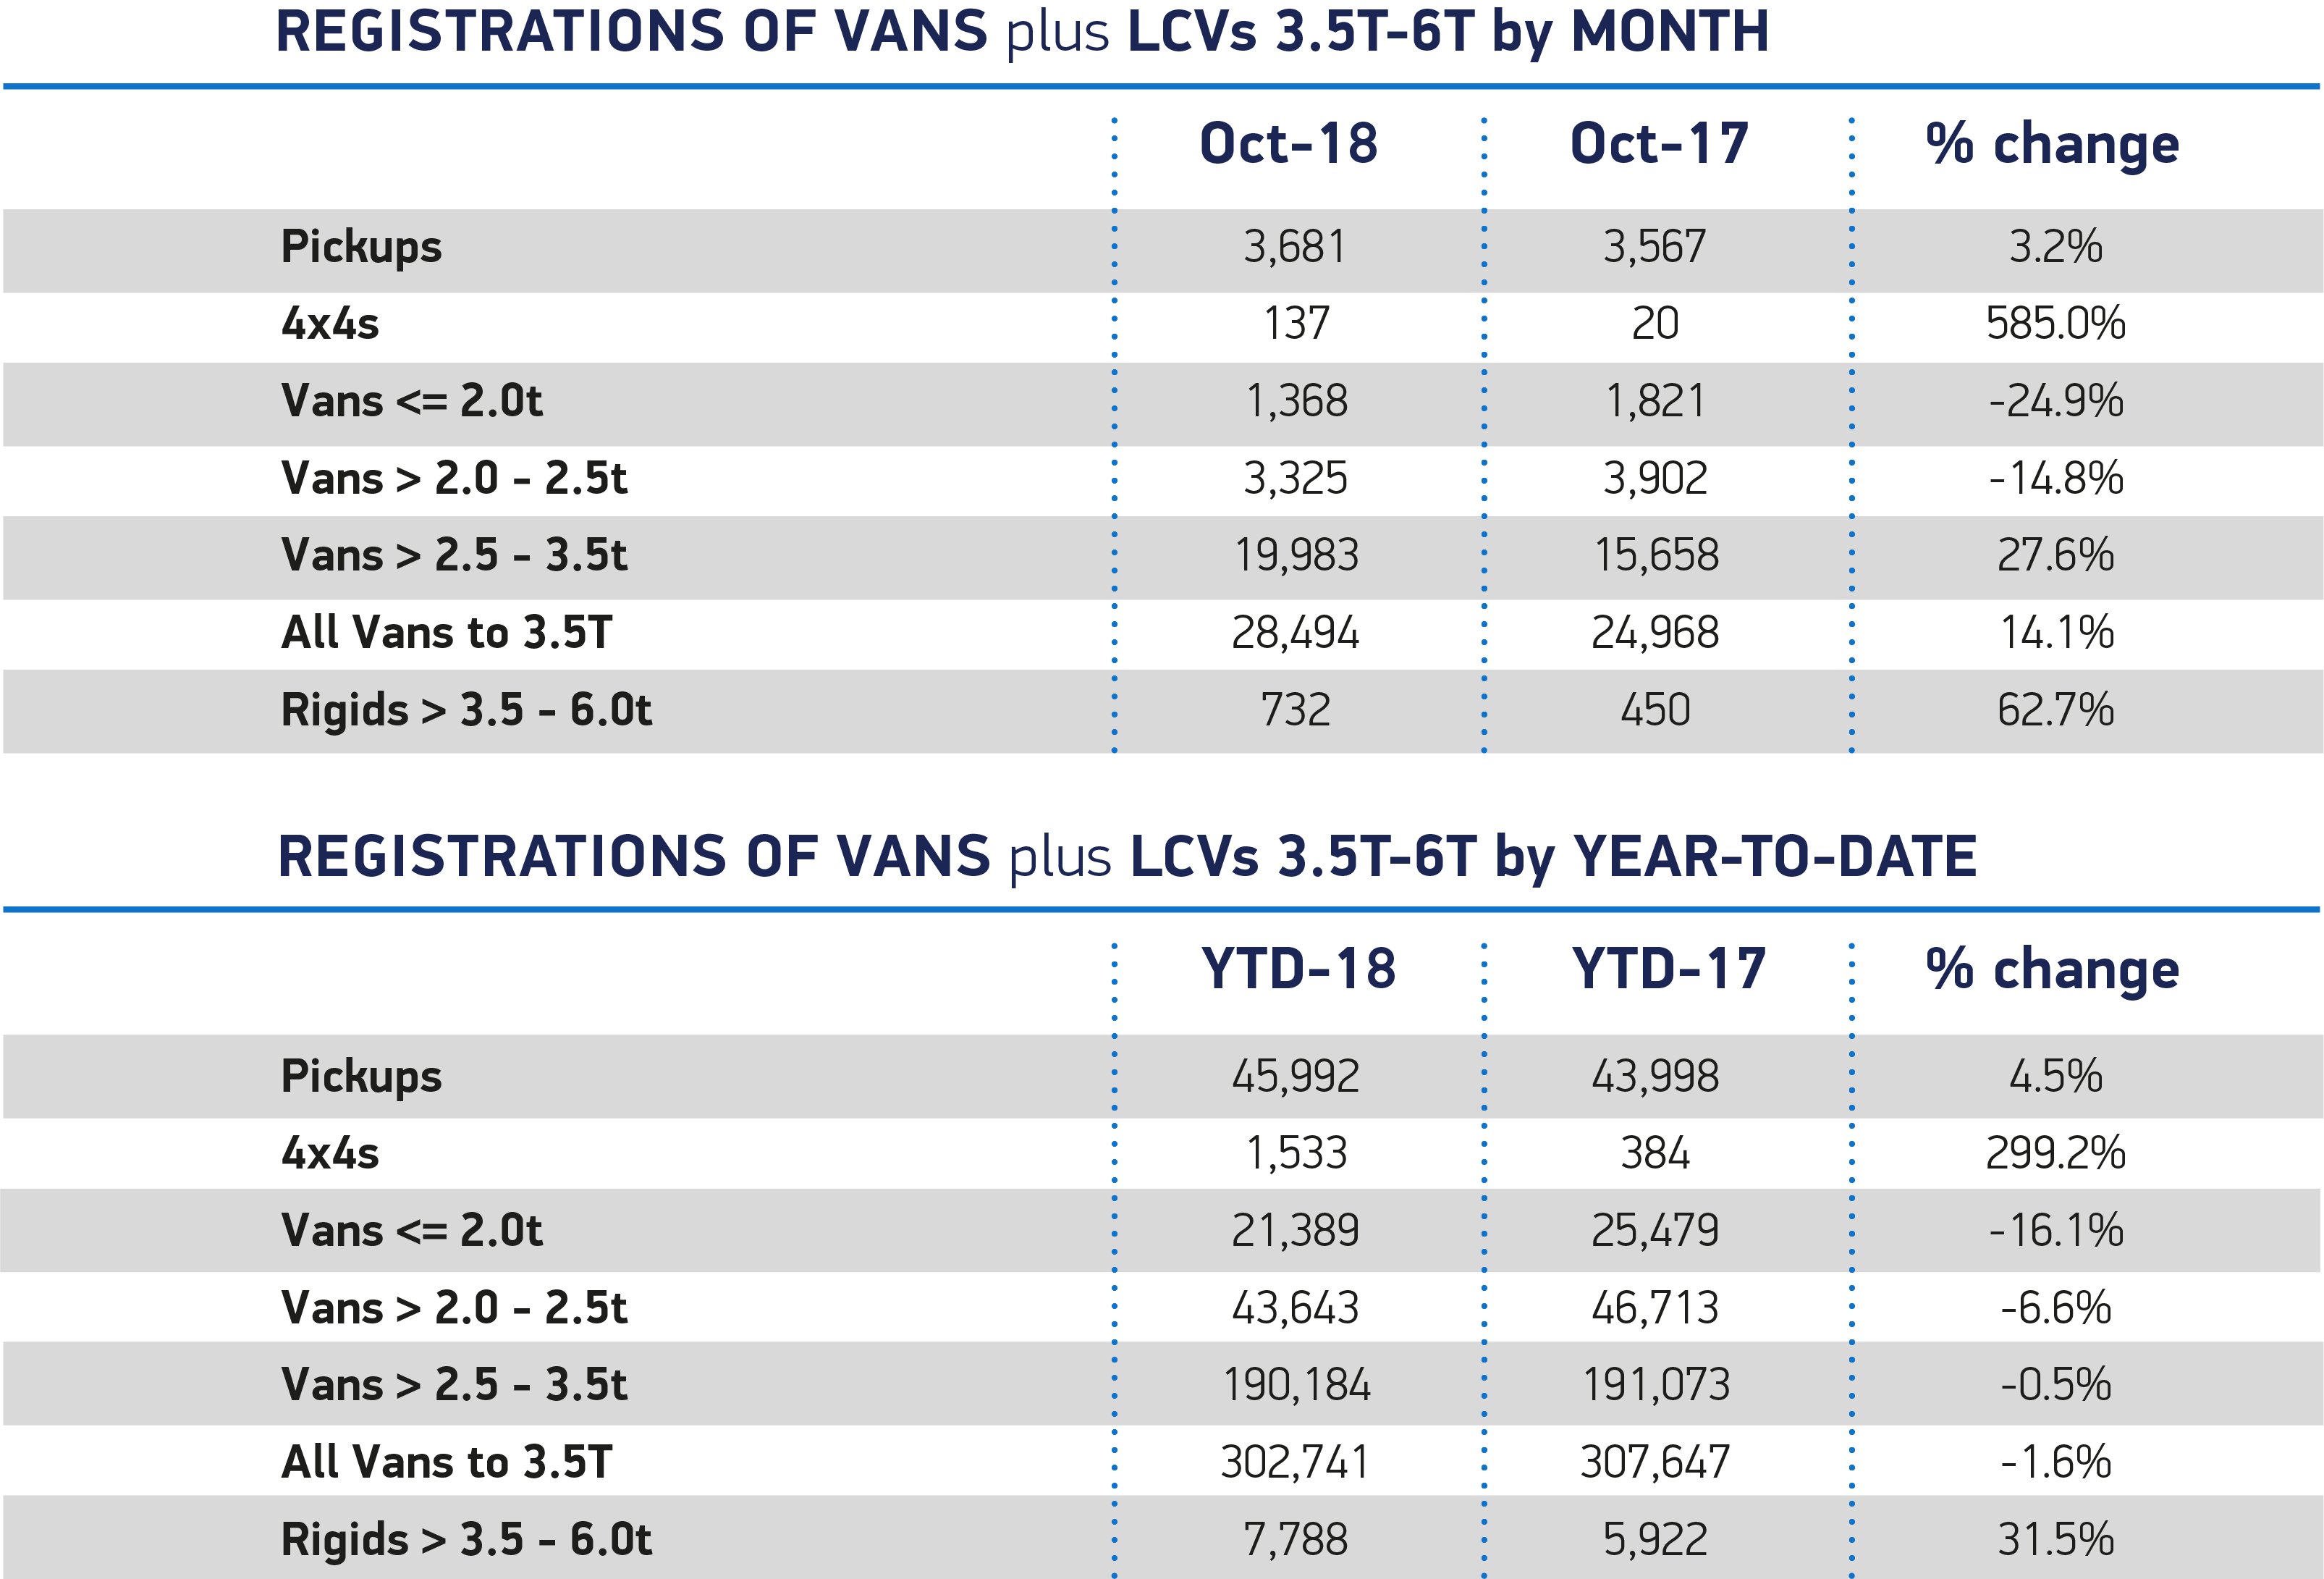 ec7f769dd41913 Demand for new light commercial vehicles (LCVs) increased in October